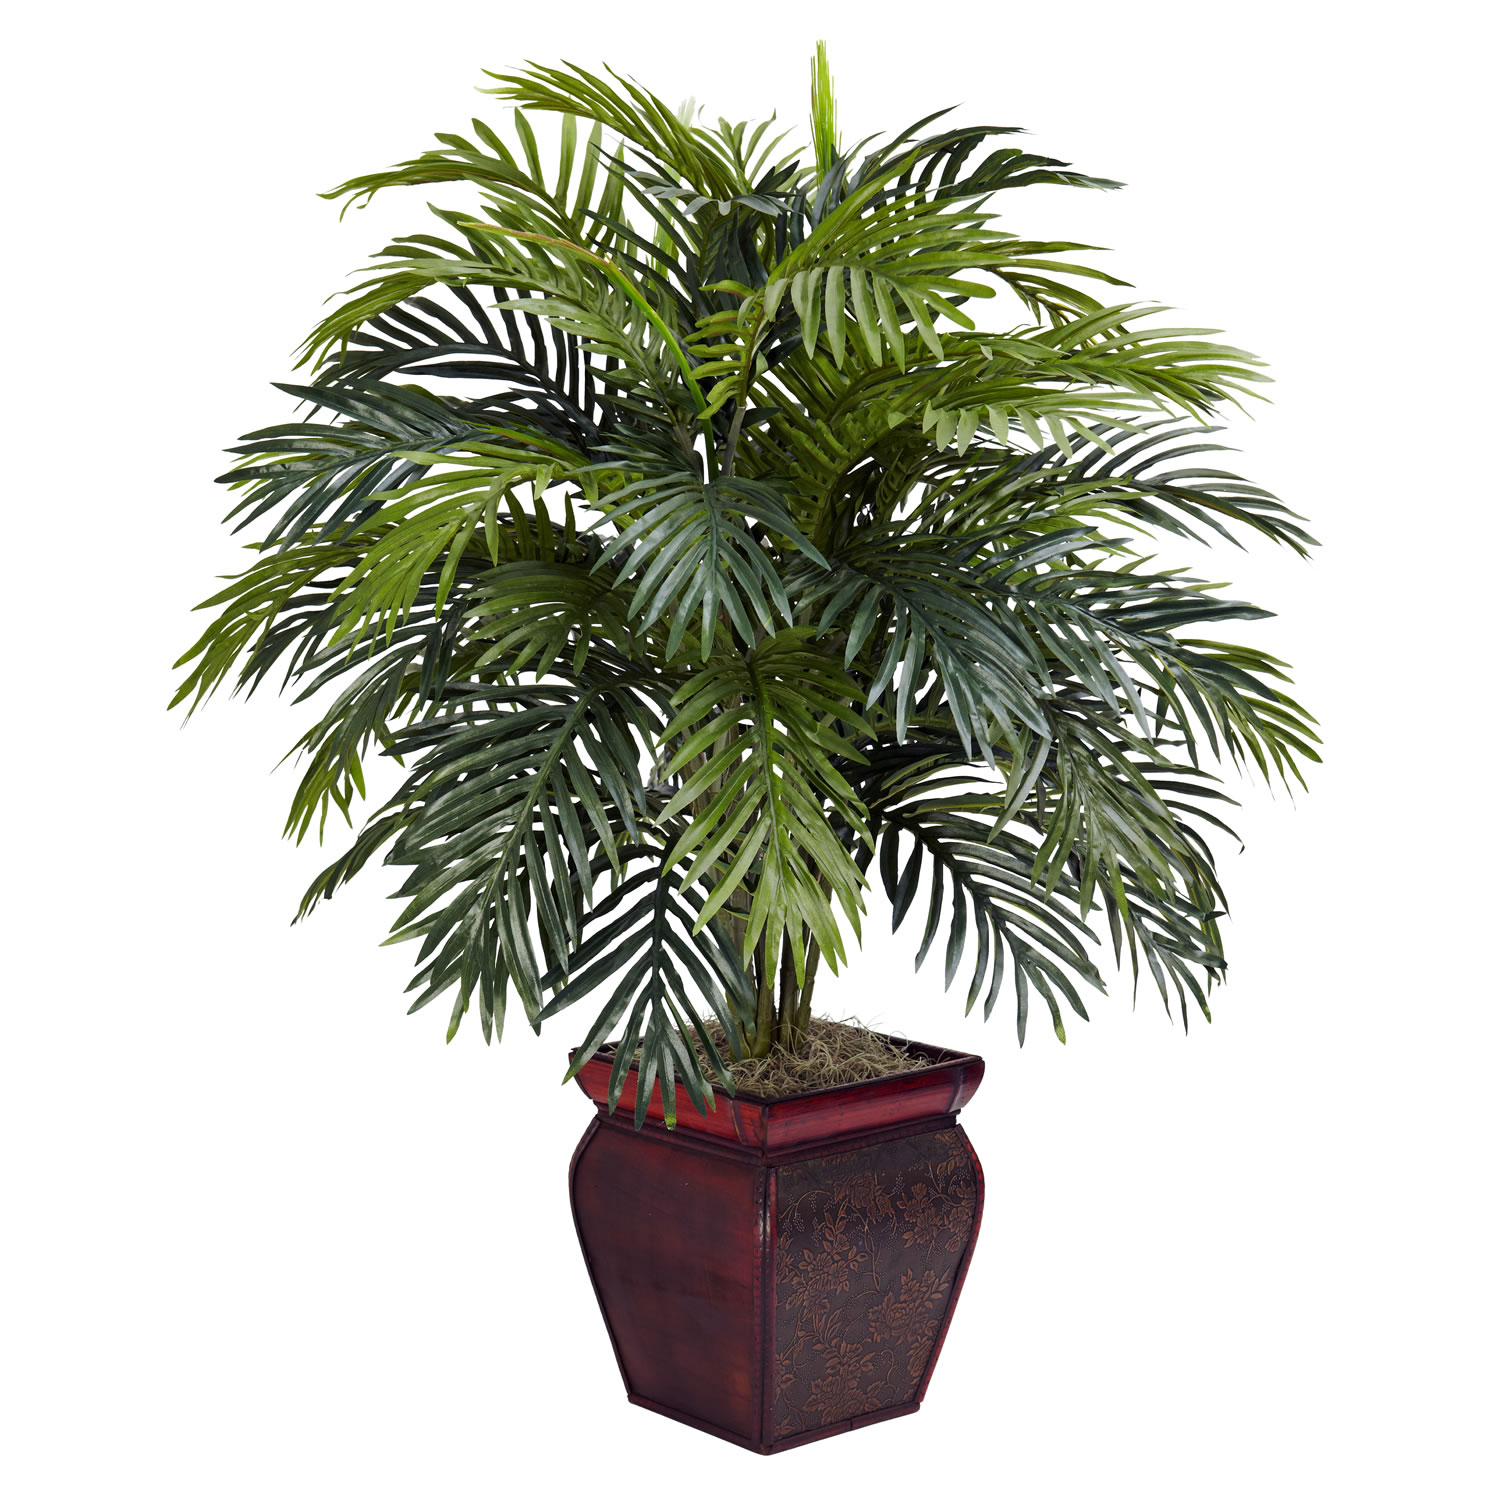 38 inch Artificial Areca Plant in Decorative Planter | 6686